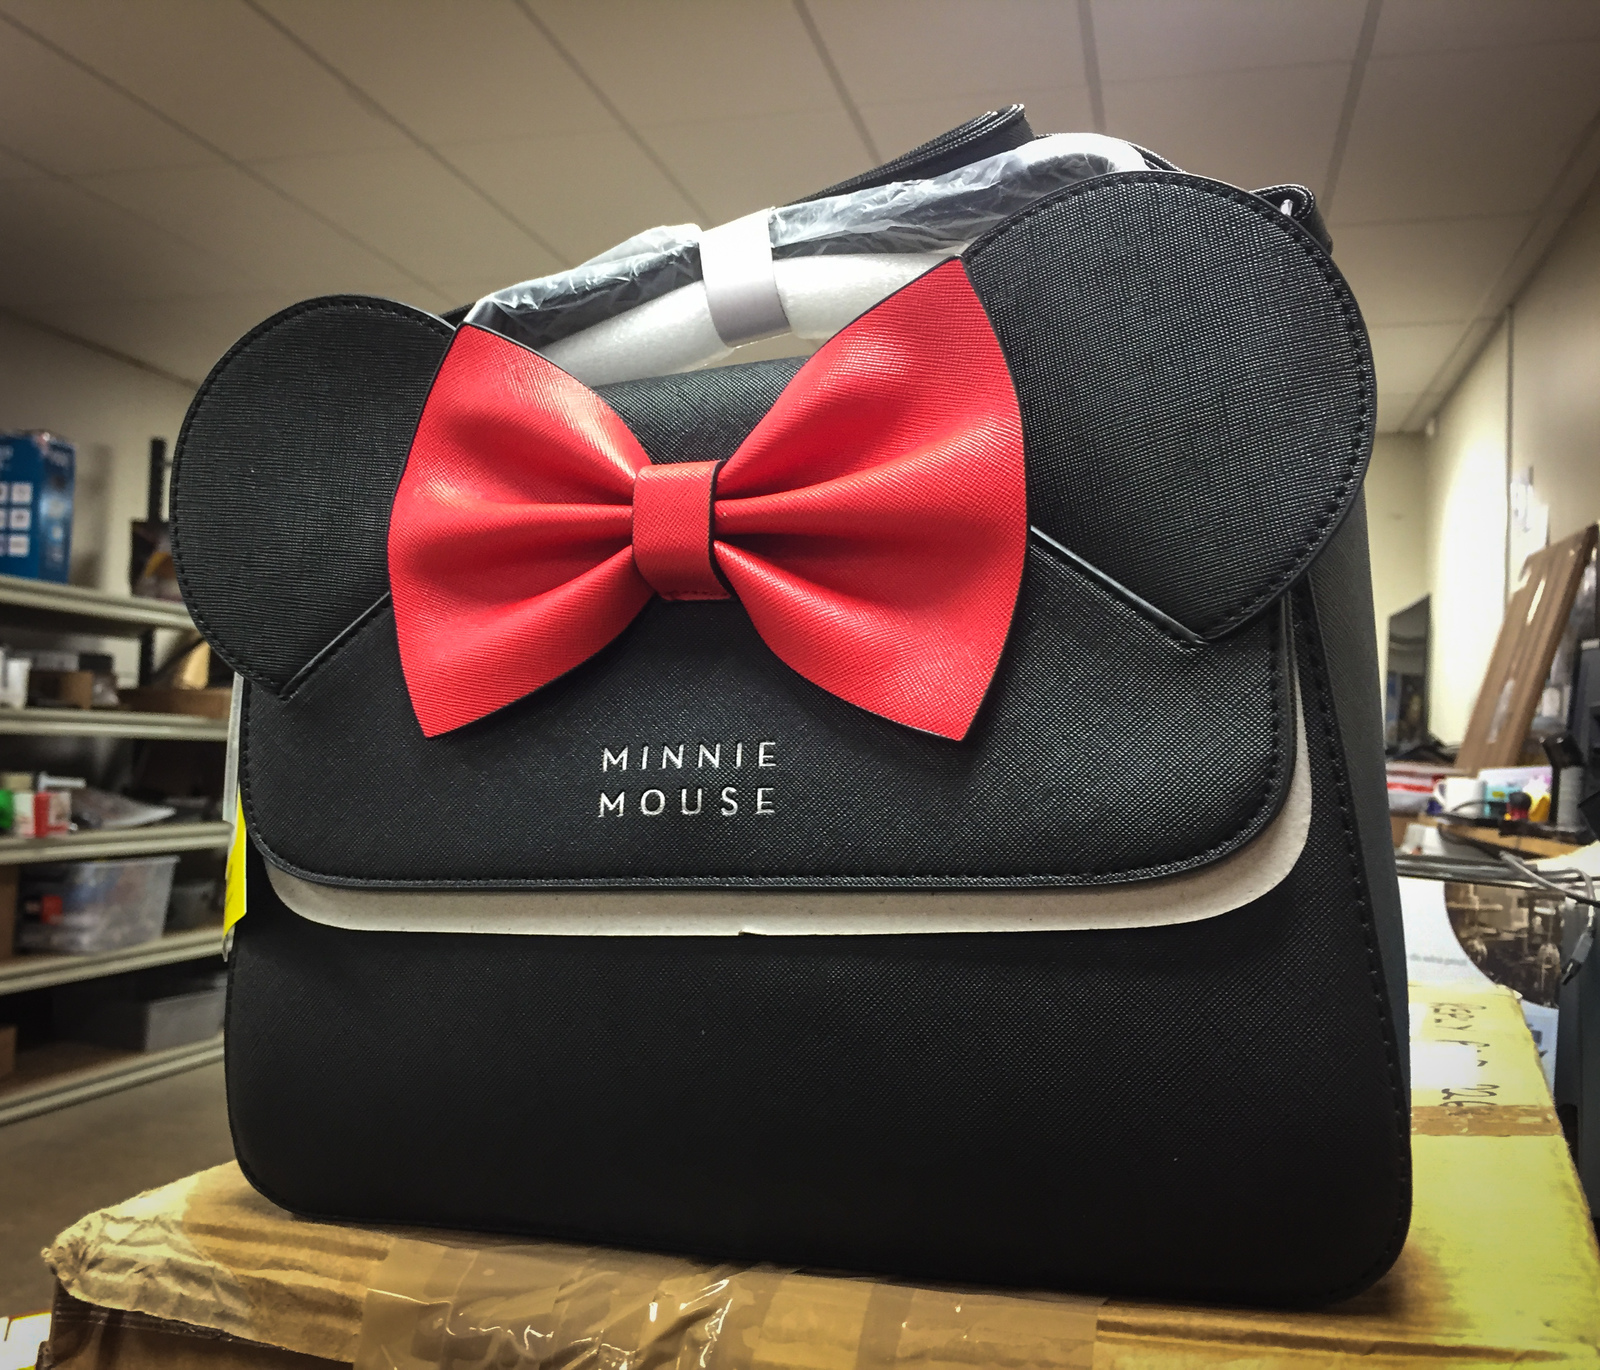 b8e10ca4aa5e ... Loungefly: Disney Minnie Mouse - Black Bow Crossbody Bag image